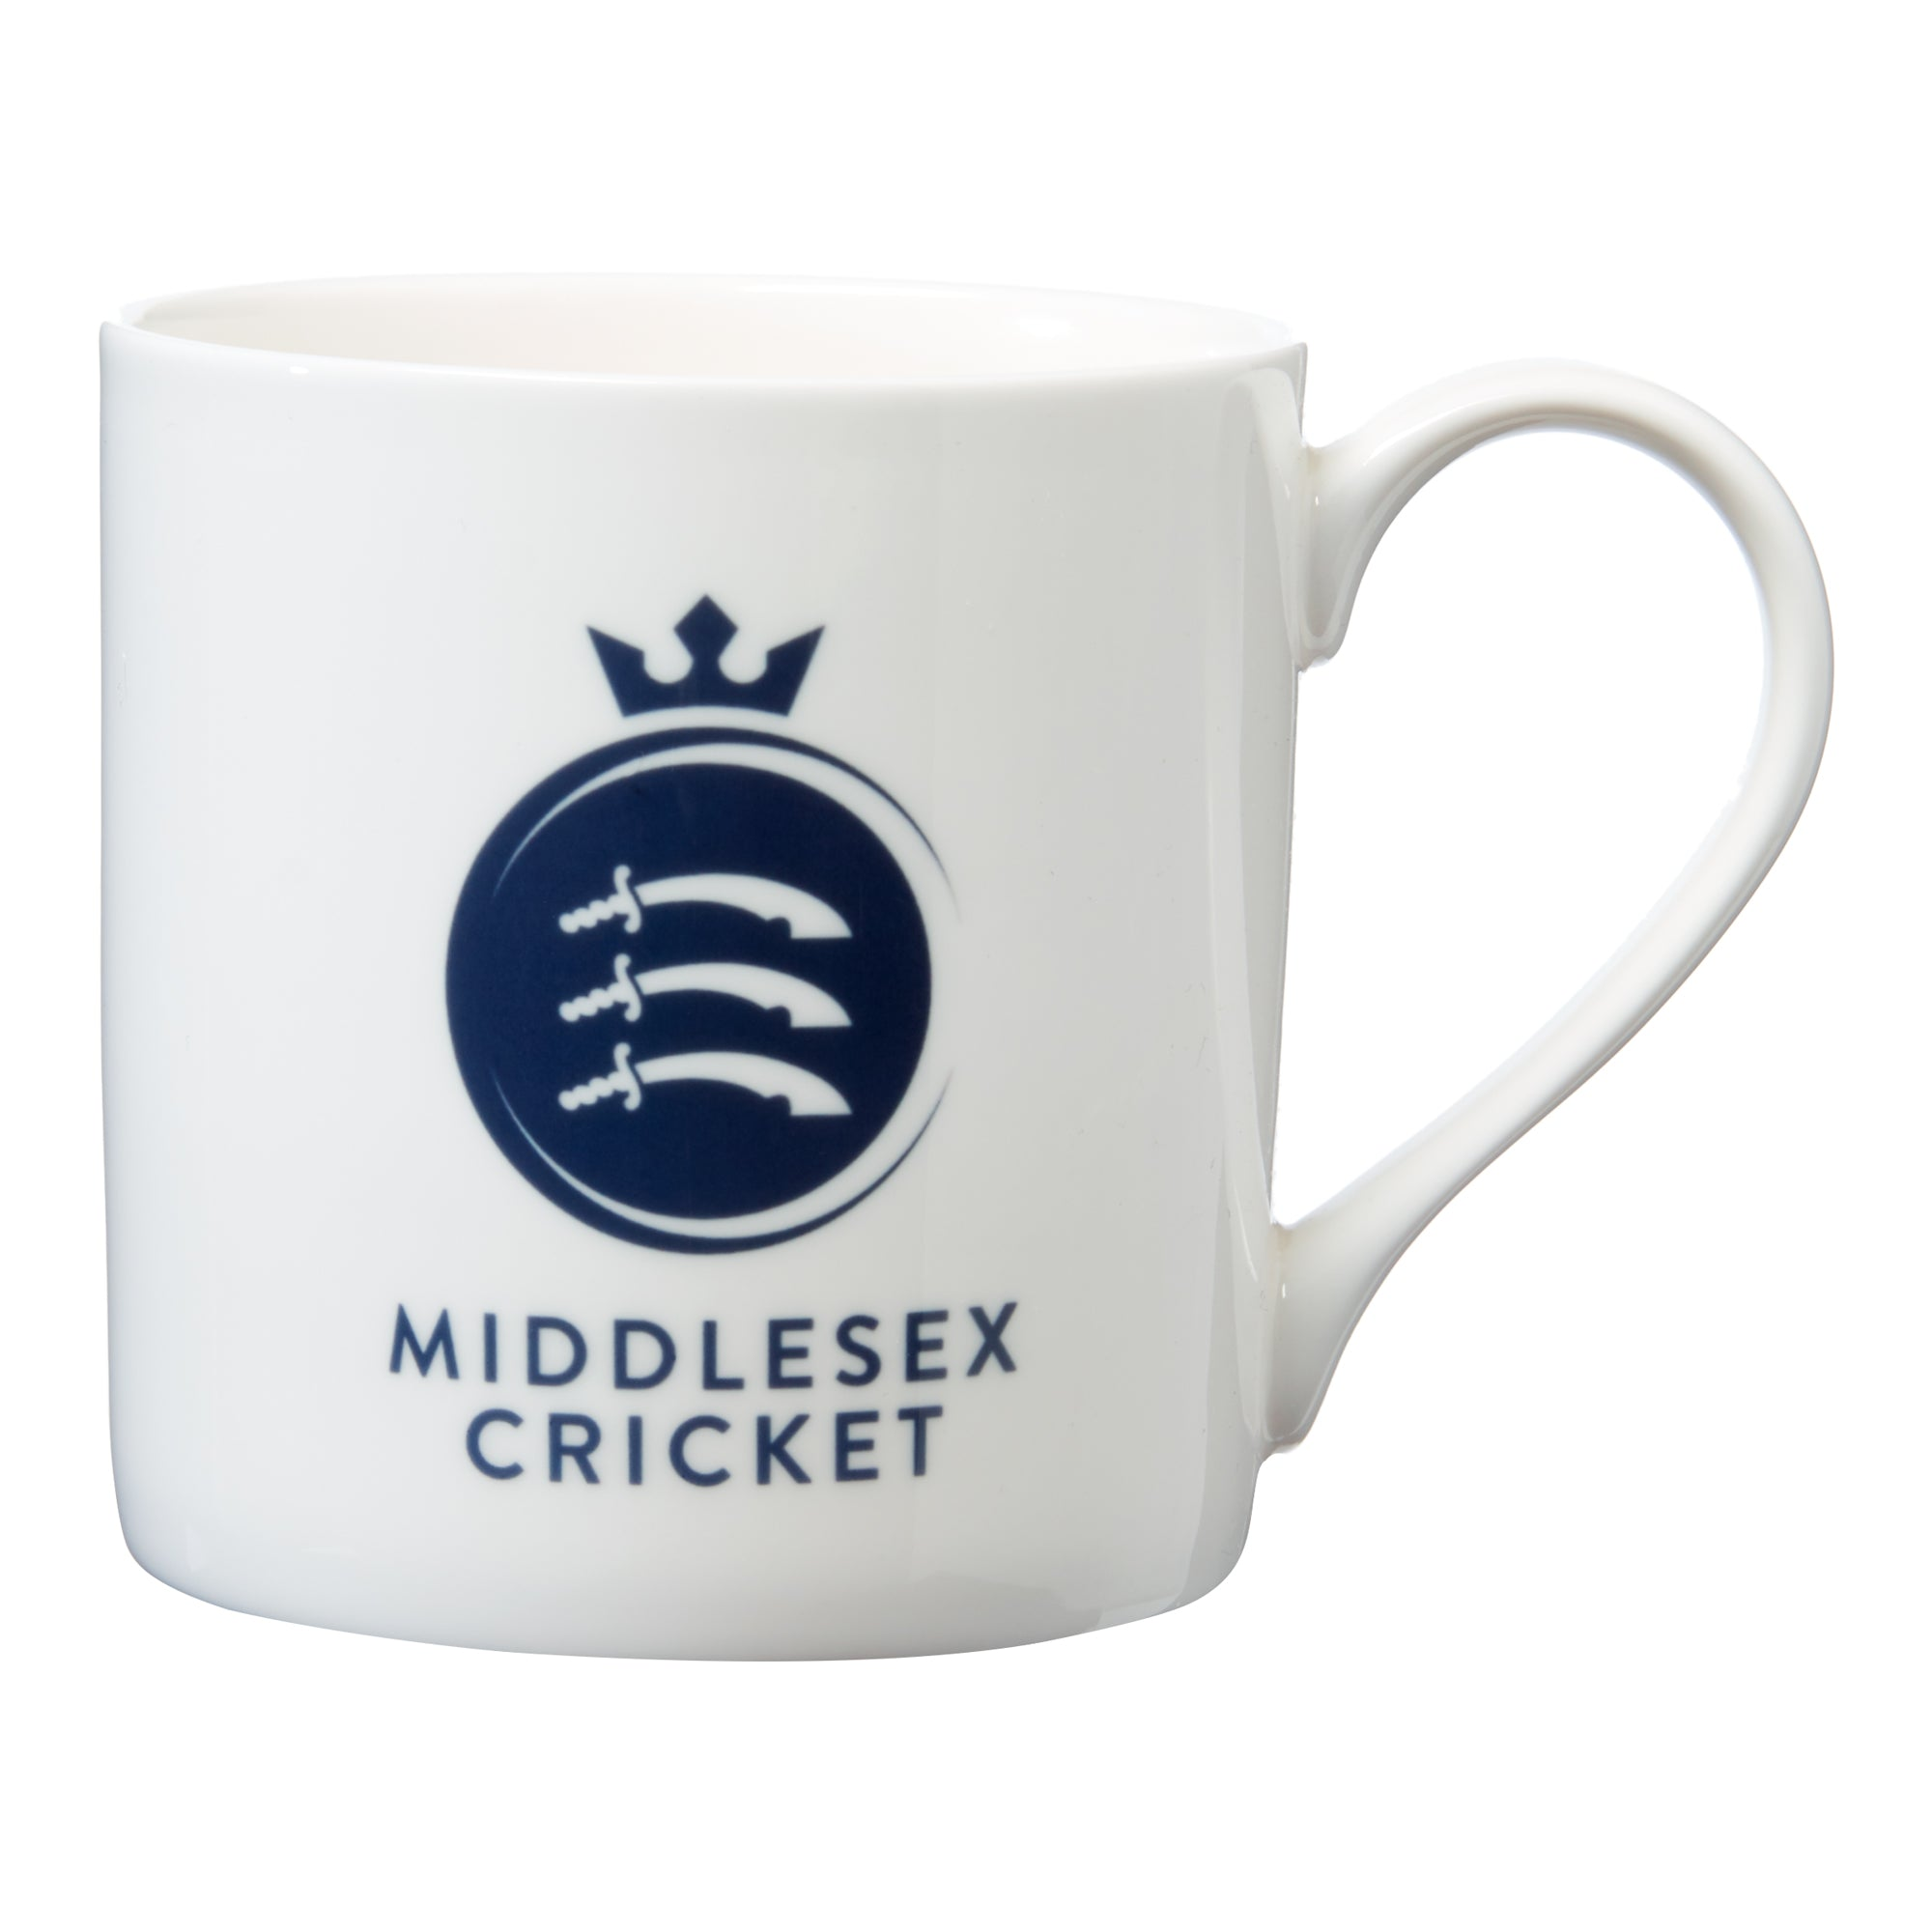 MIDDLESEX CRICKET CHINA MUG